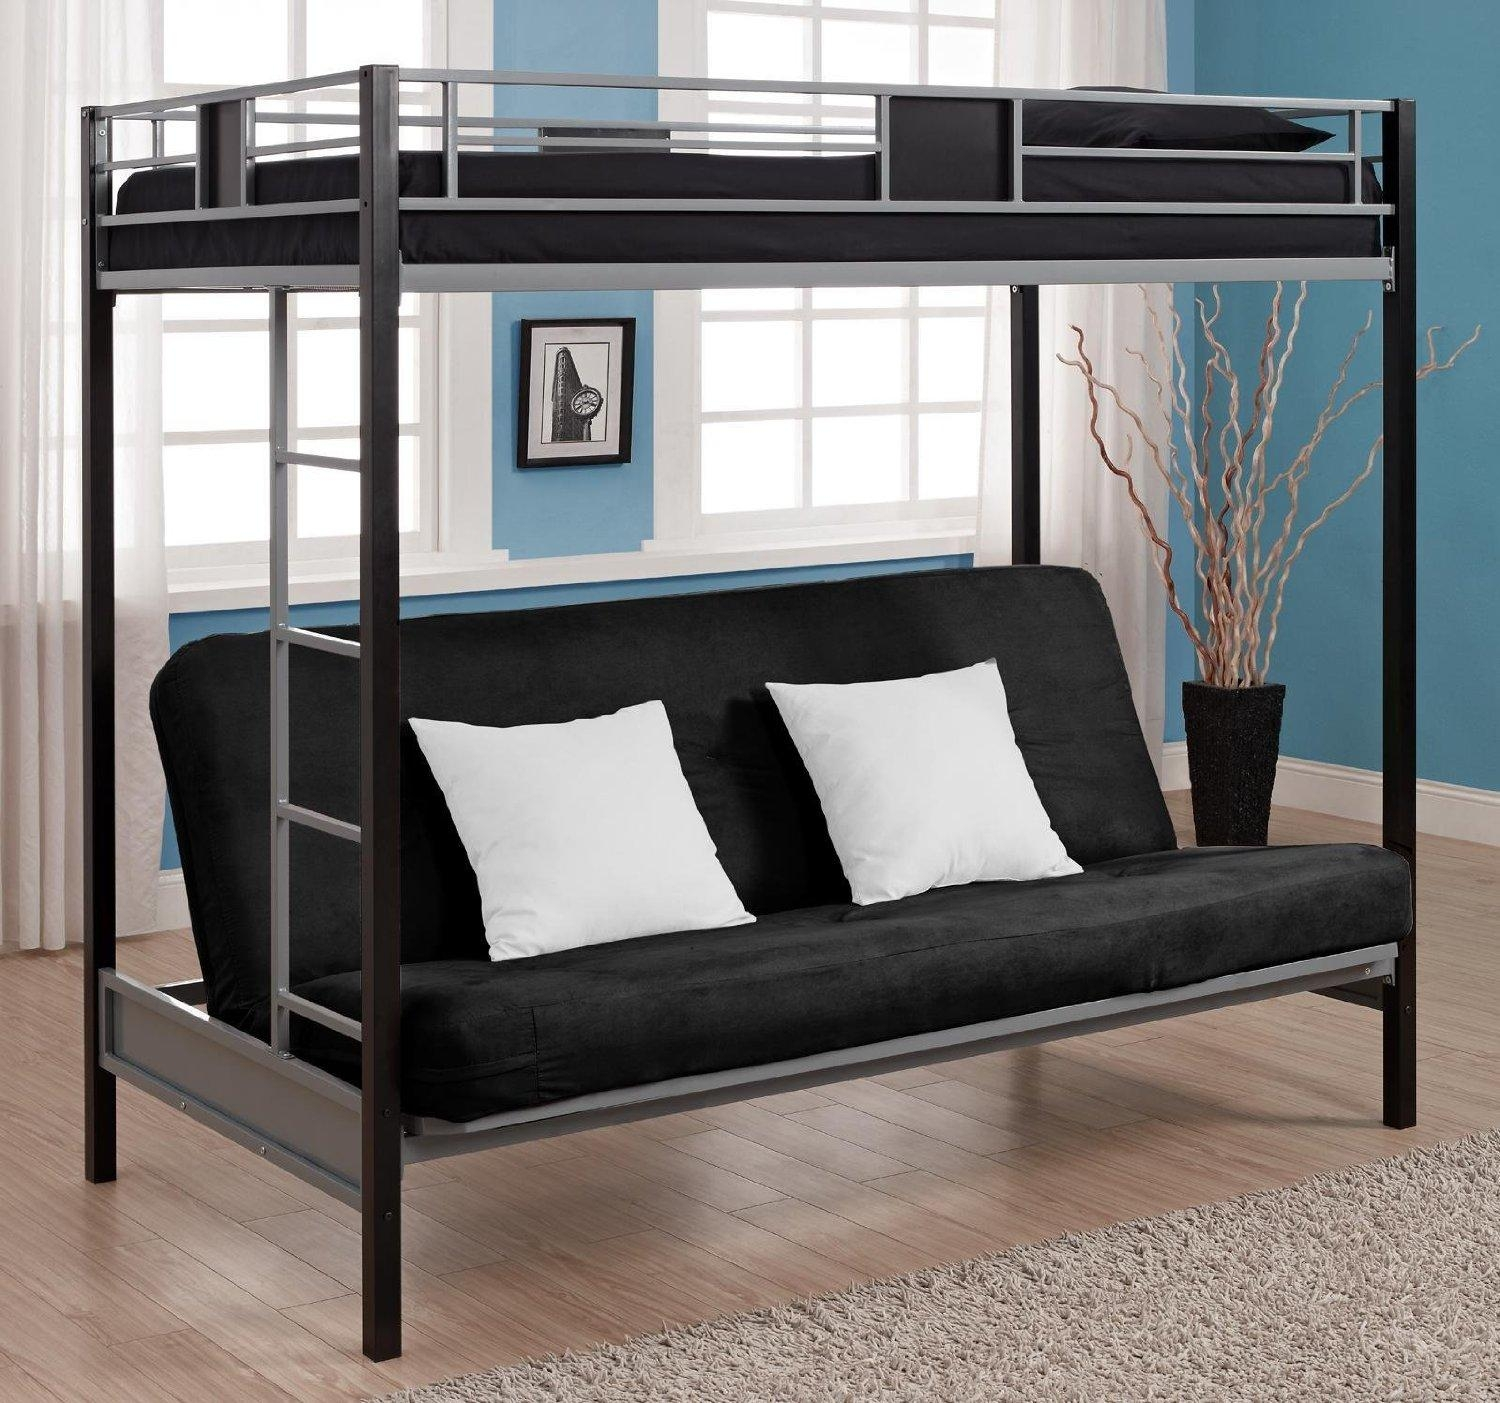 Total Fab: Metal & Wood Loft Beds With Sofa Underneath With Bunk Bed With Sofas Underneath (Image 20 of 20)